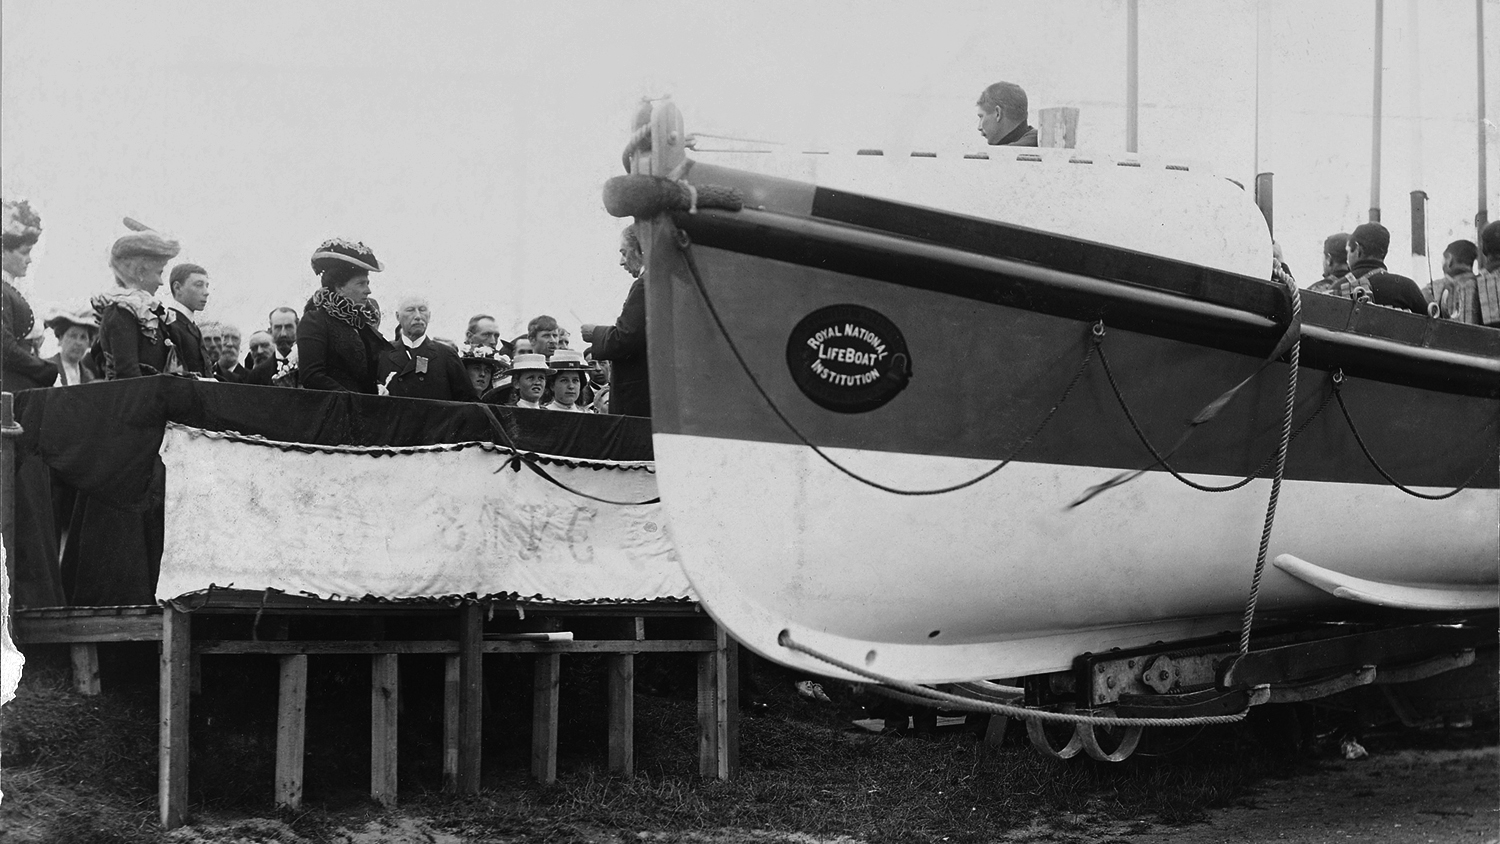 Princess Mary of Battenburg attending the naming ceremony of RNLI lifeboat Queen Victoria in 1887